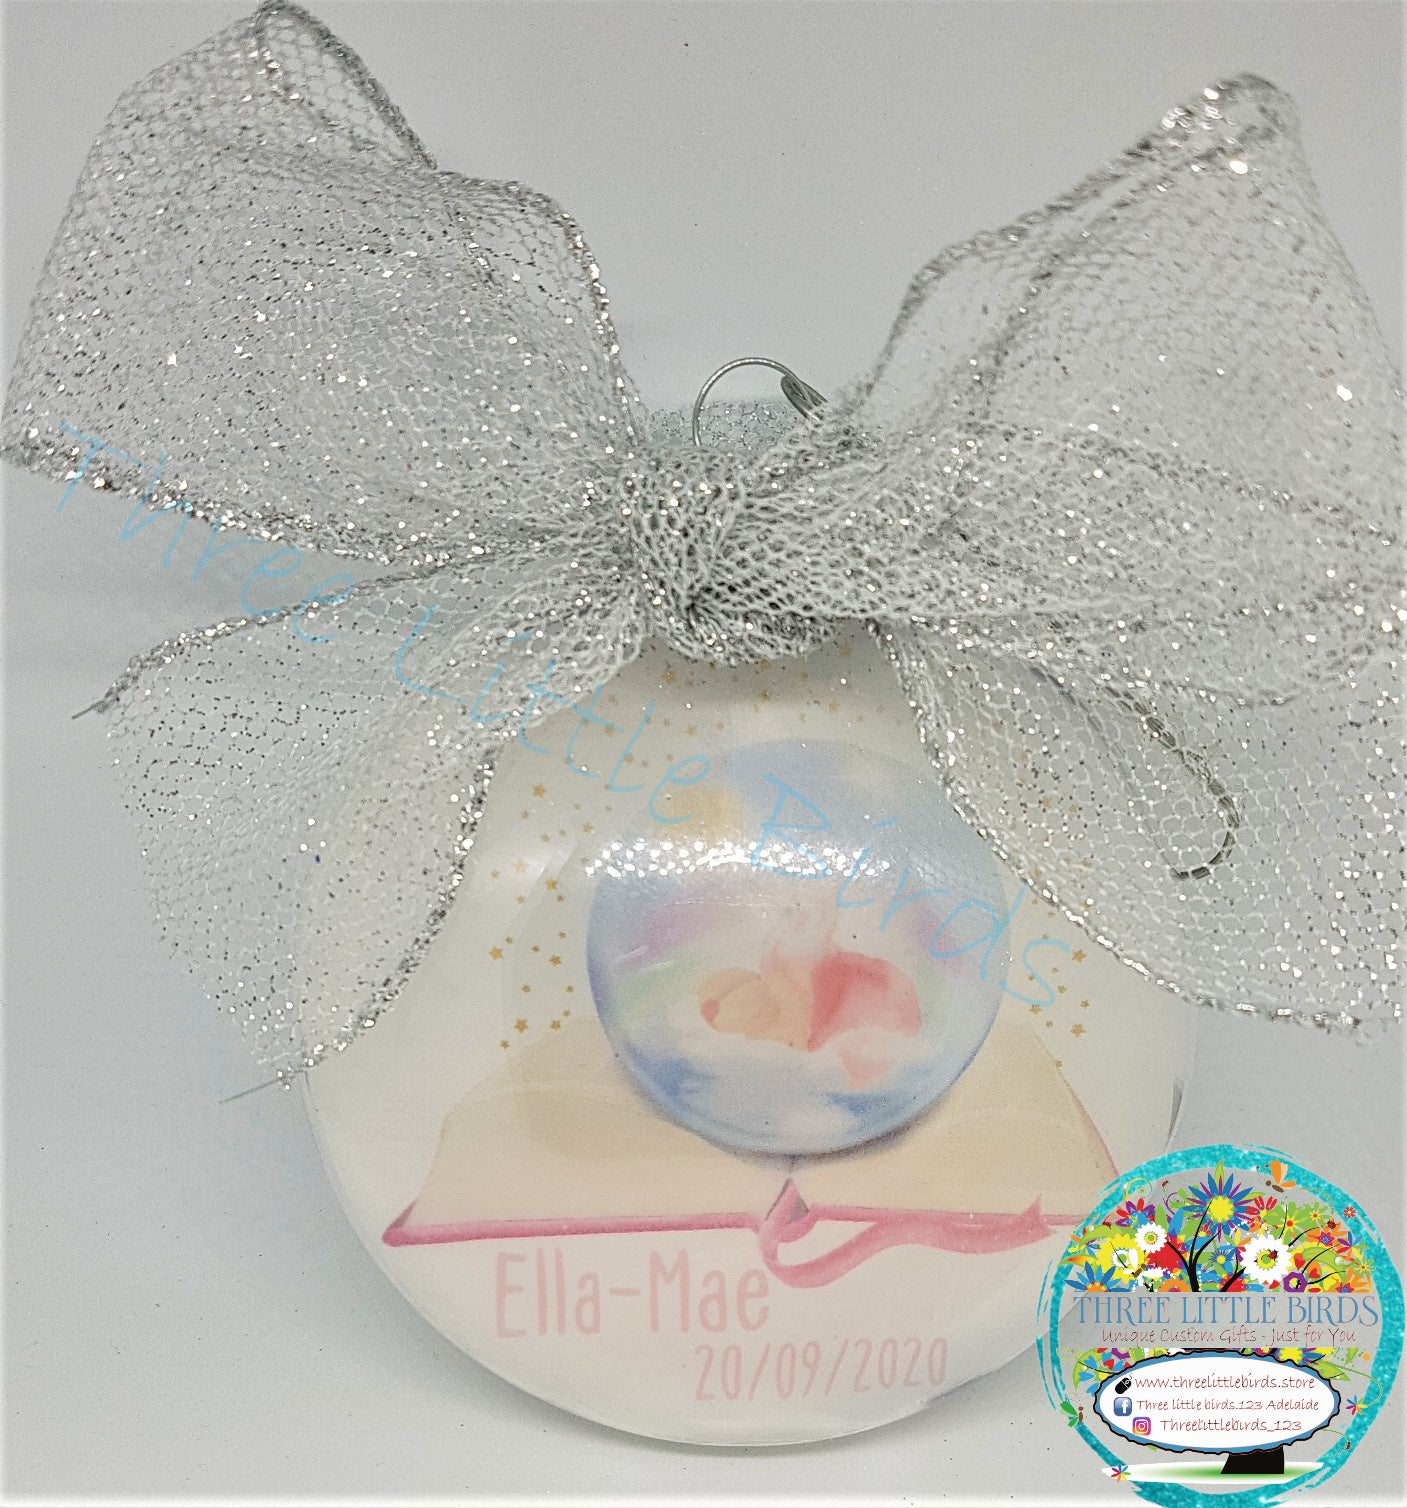 Baby & Infant Loss Memorial Tree Bauble